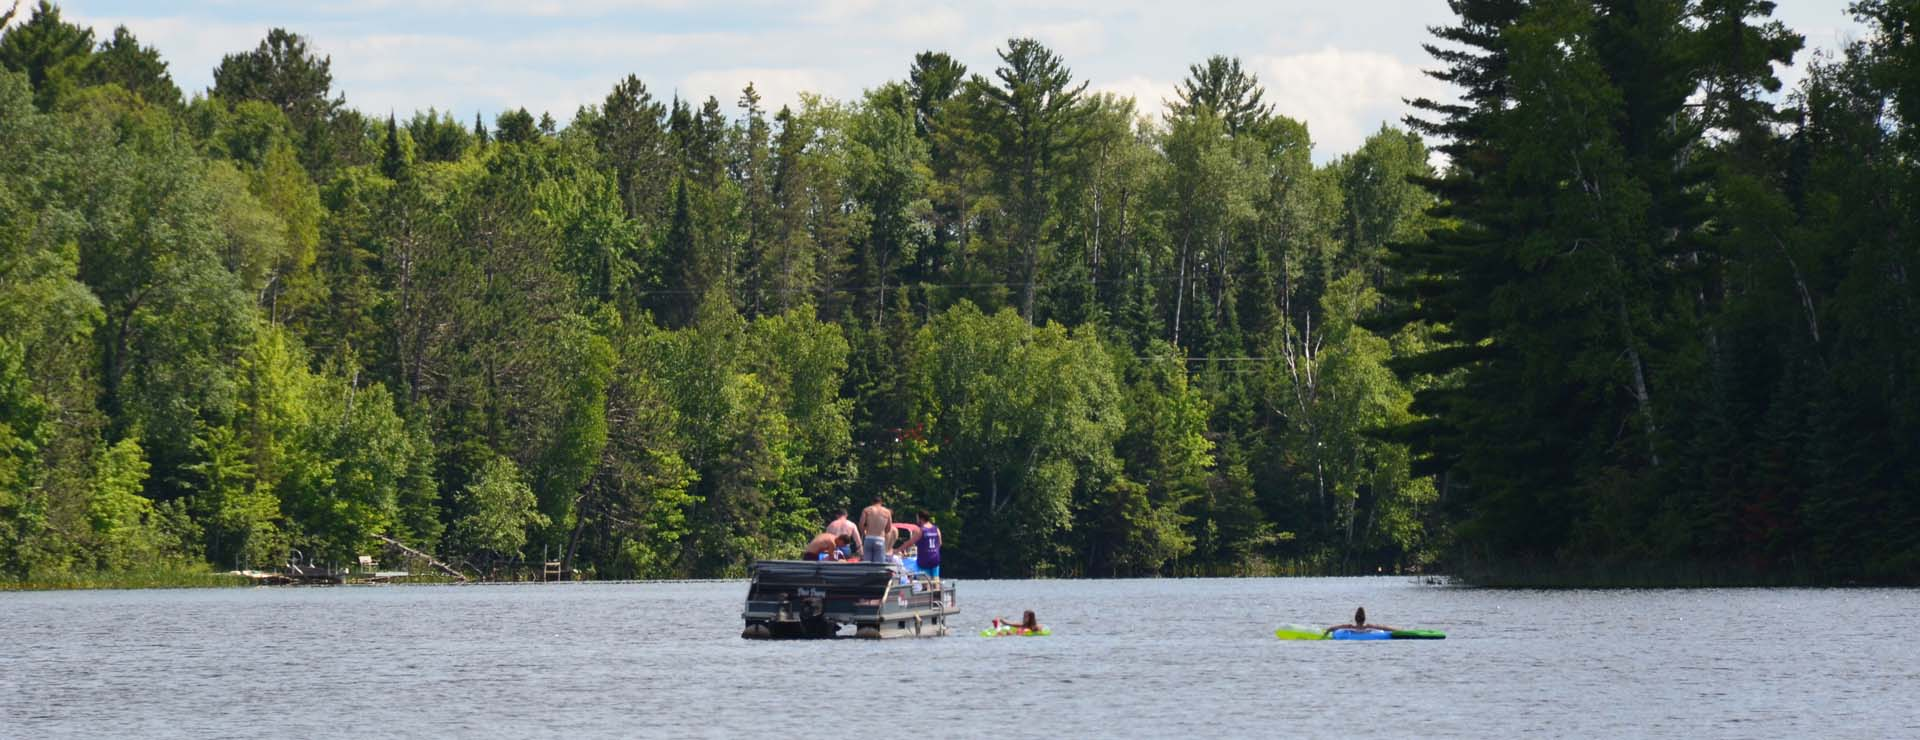 slide-boating-pontoon